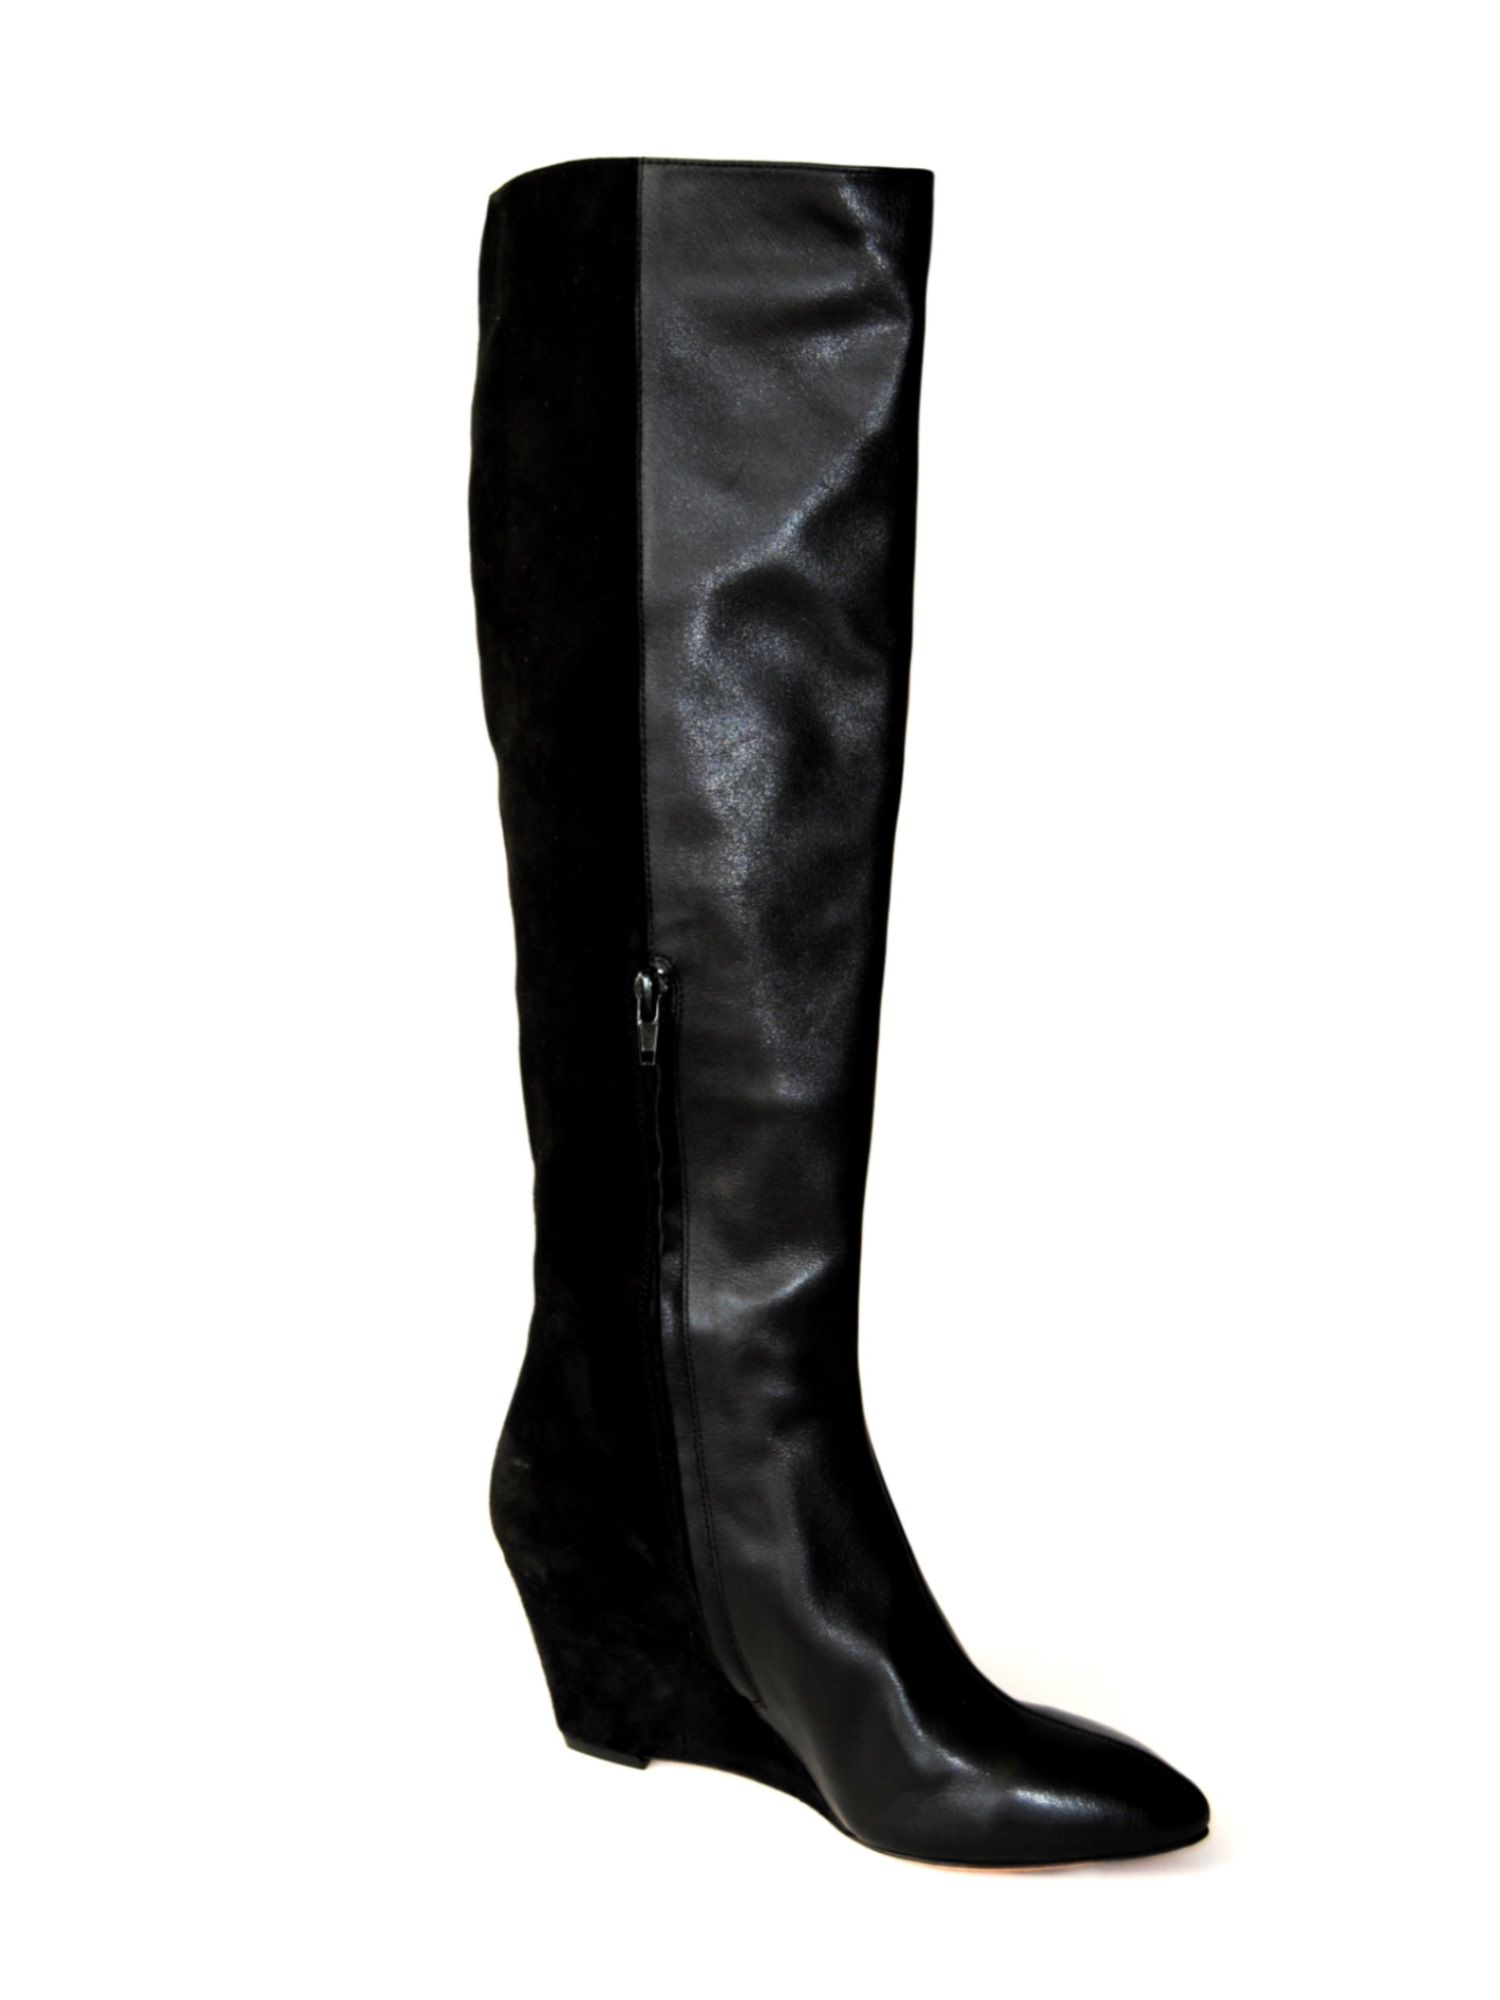 Venettia wedge high boots